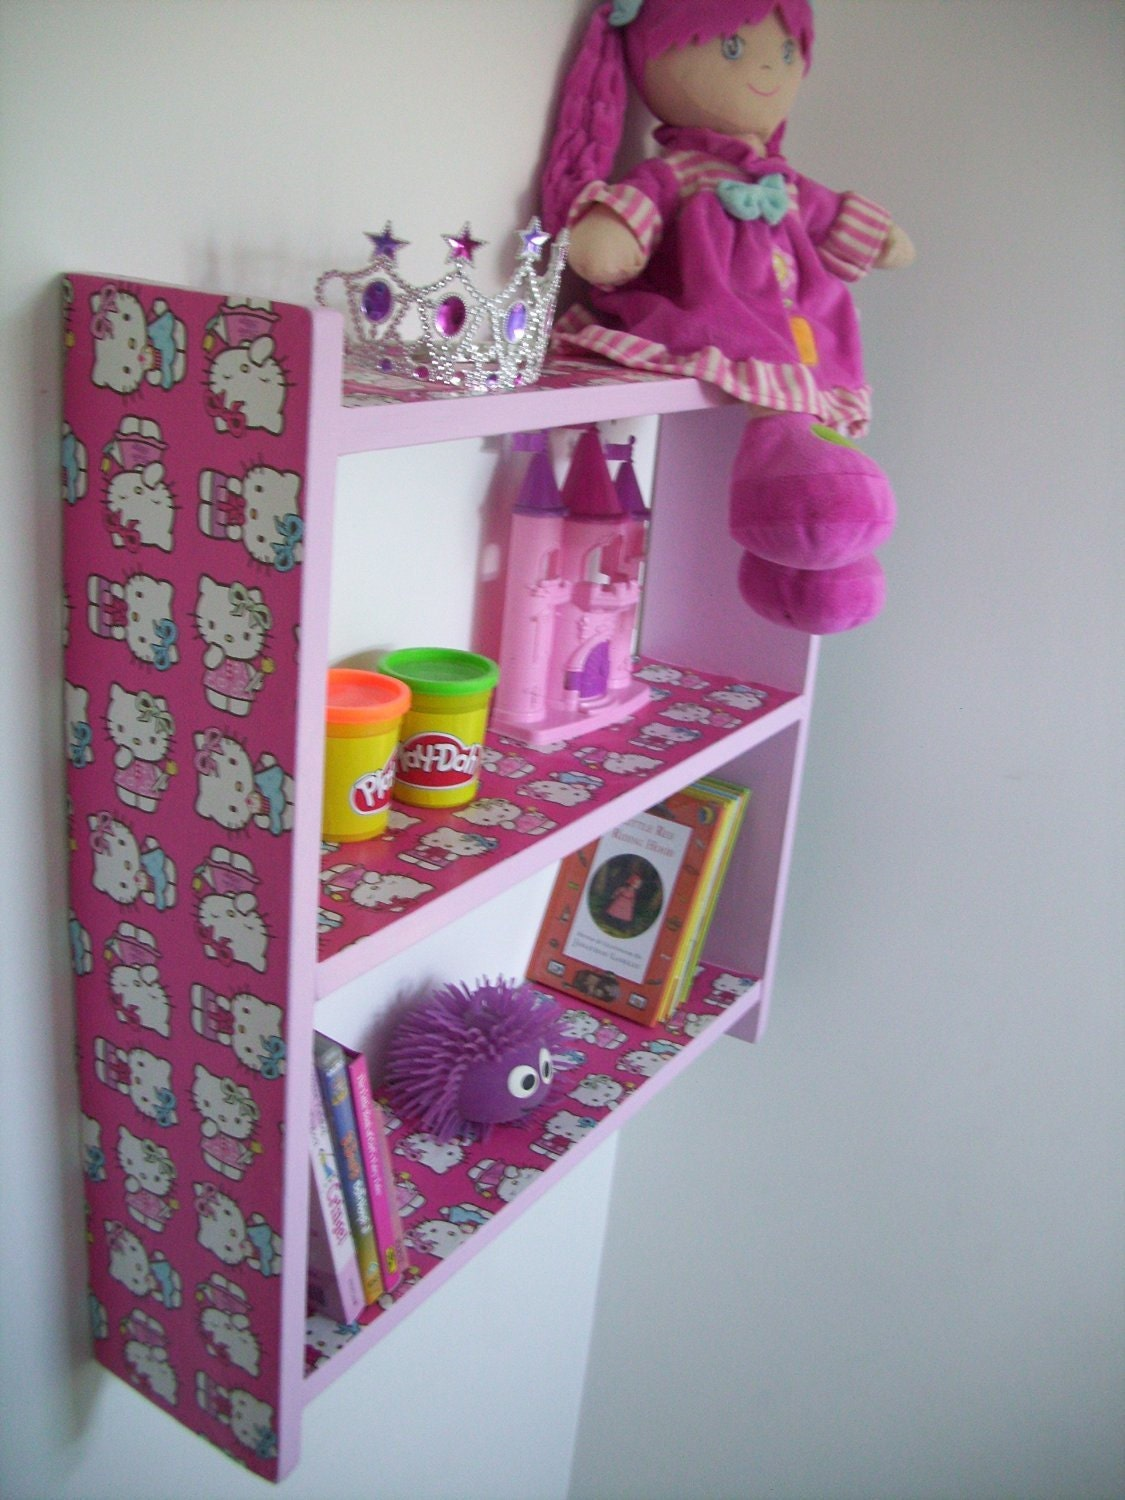 60cm H x 60cm W Childrens Pink Hello Kitty Bedroom Shelves Bookcase Toy Storage.